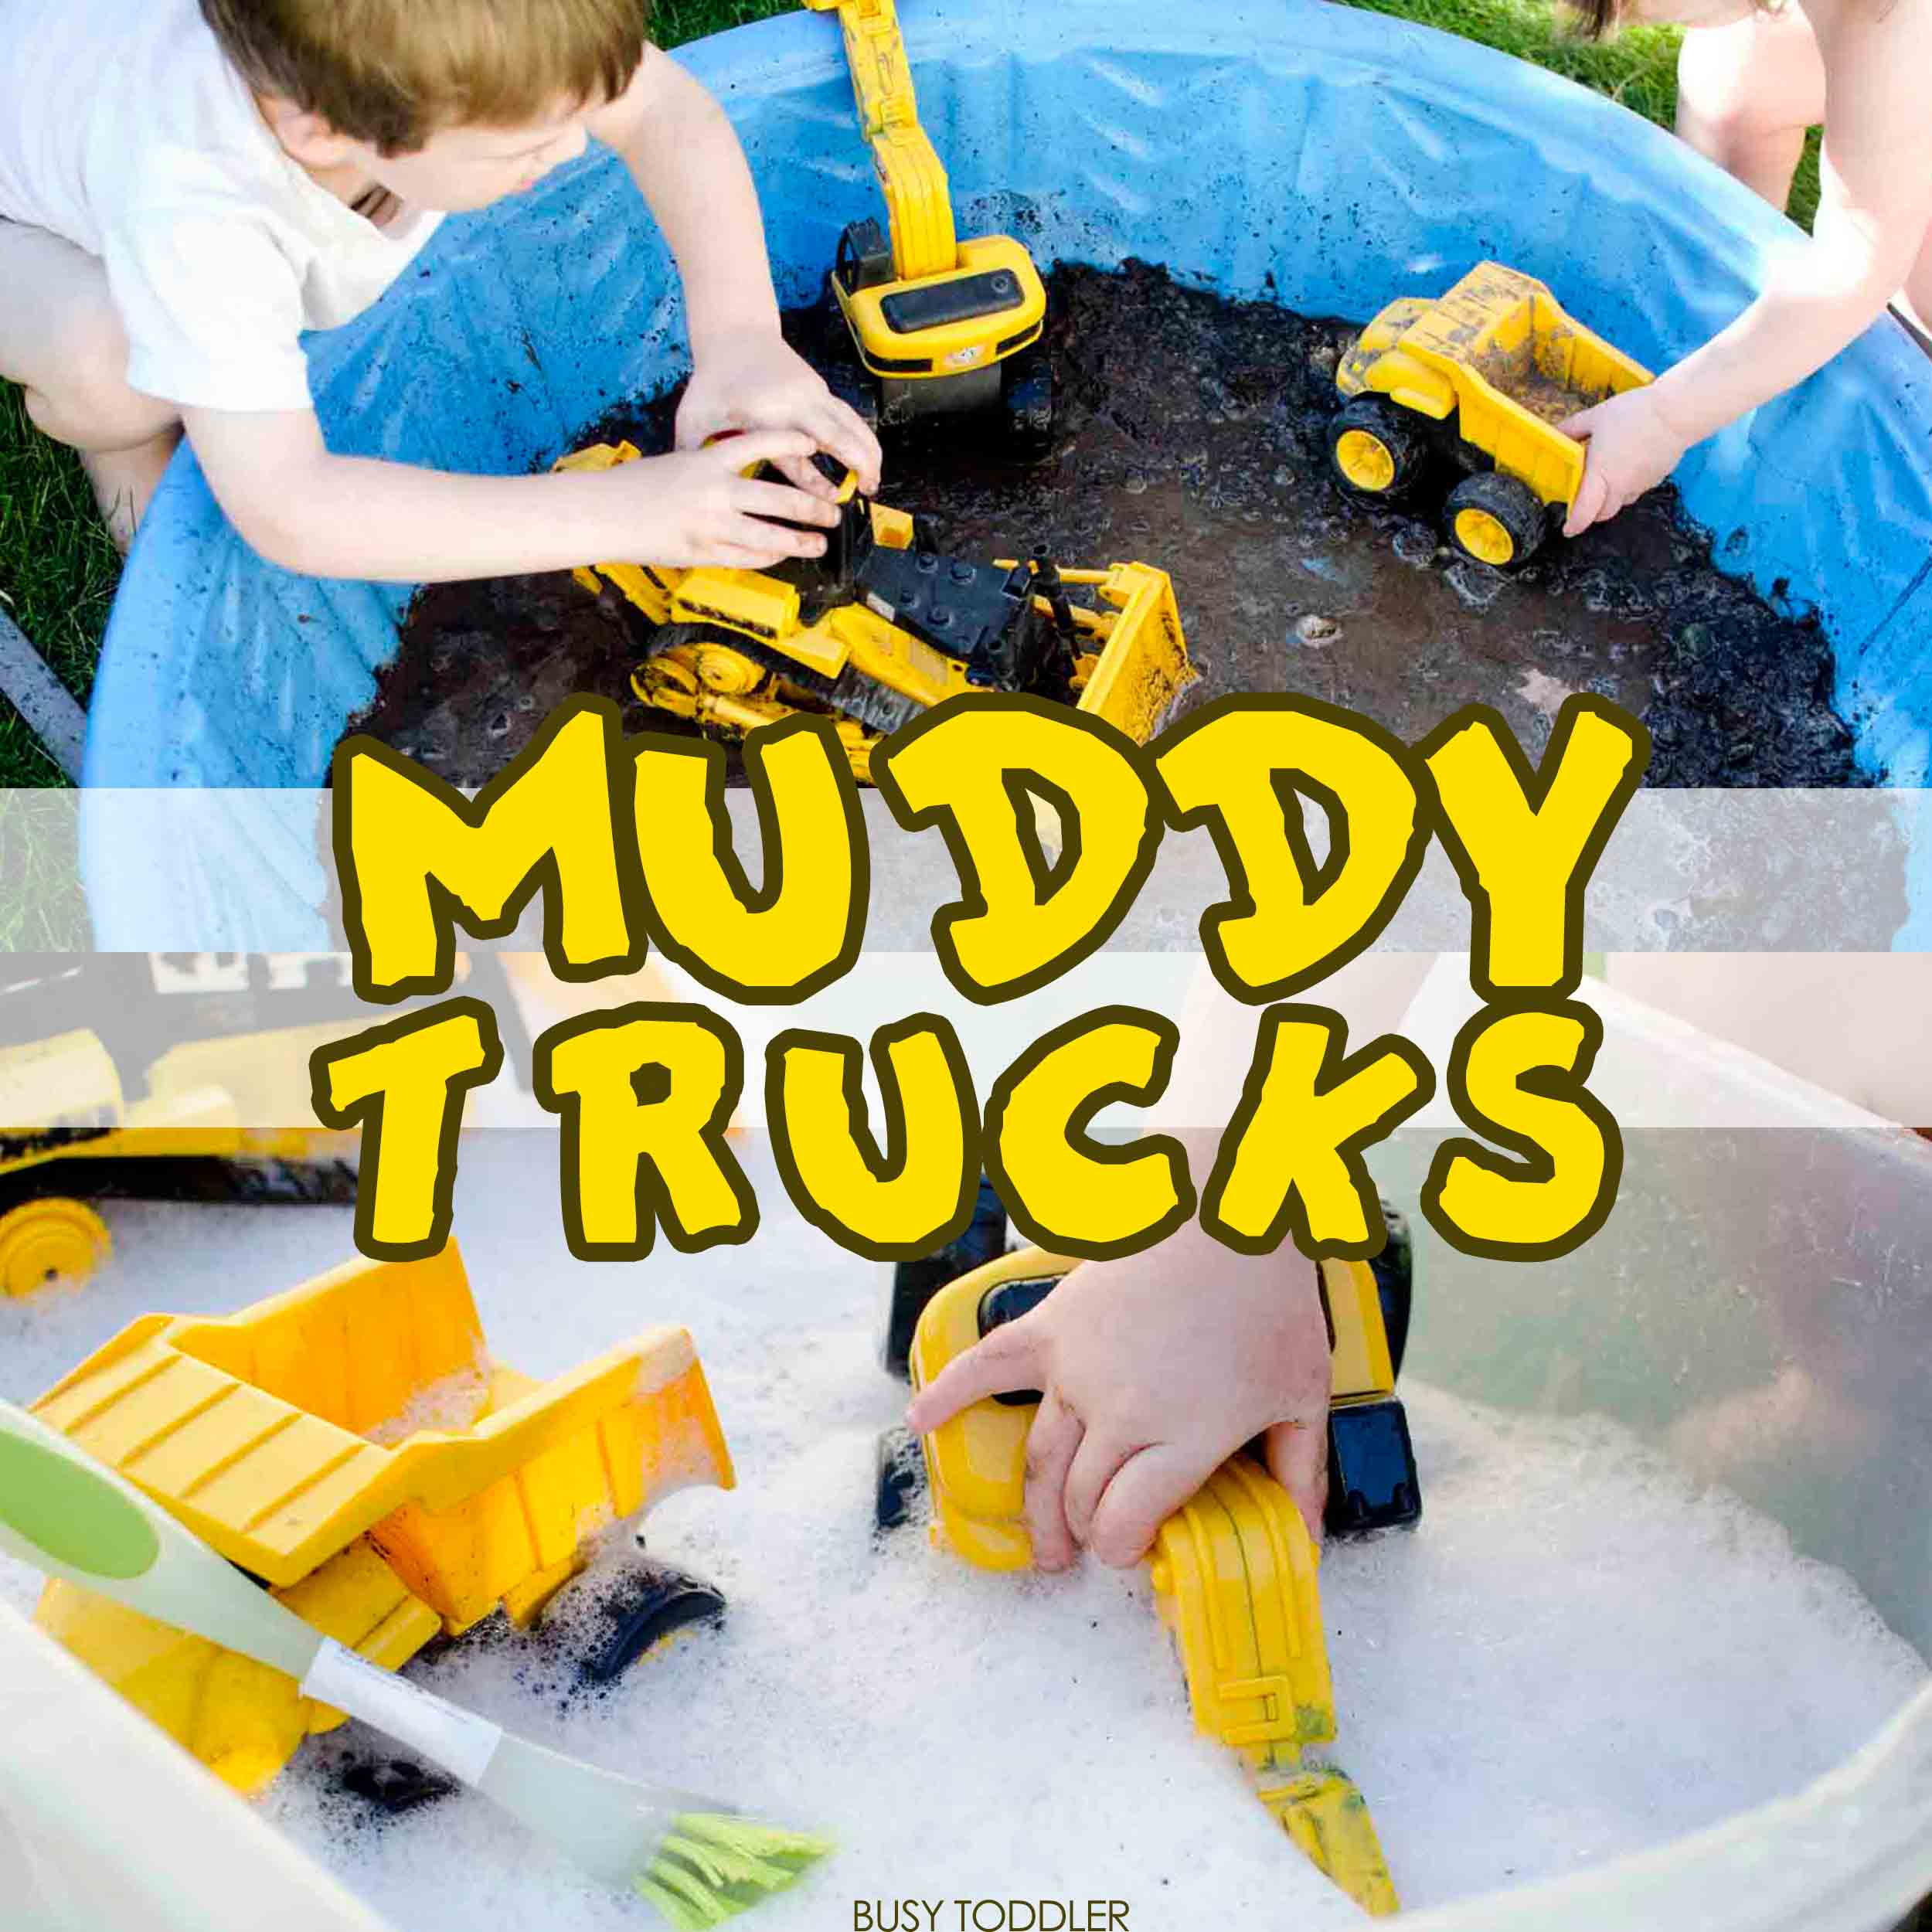 MUDDY TRUCKS: Made a mud pit for your toddlers! A fun outdoor activity that kids will love getting messy with. Fun summer activity. Easy toddler activity.